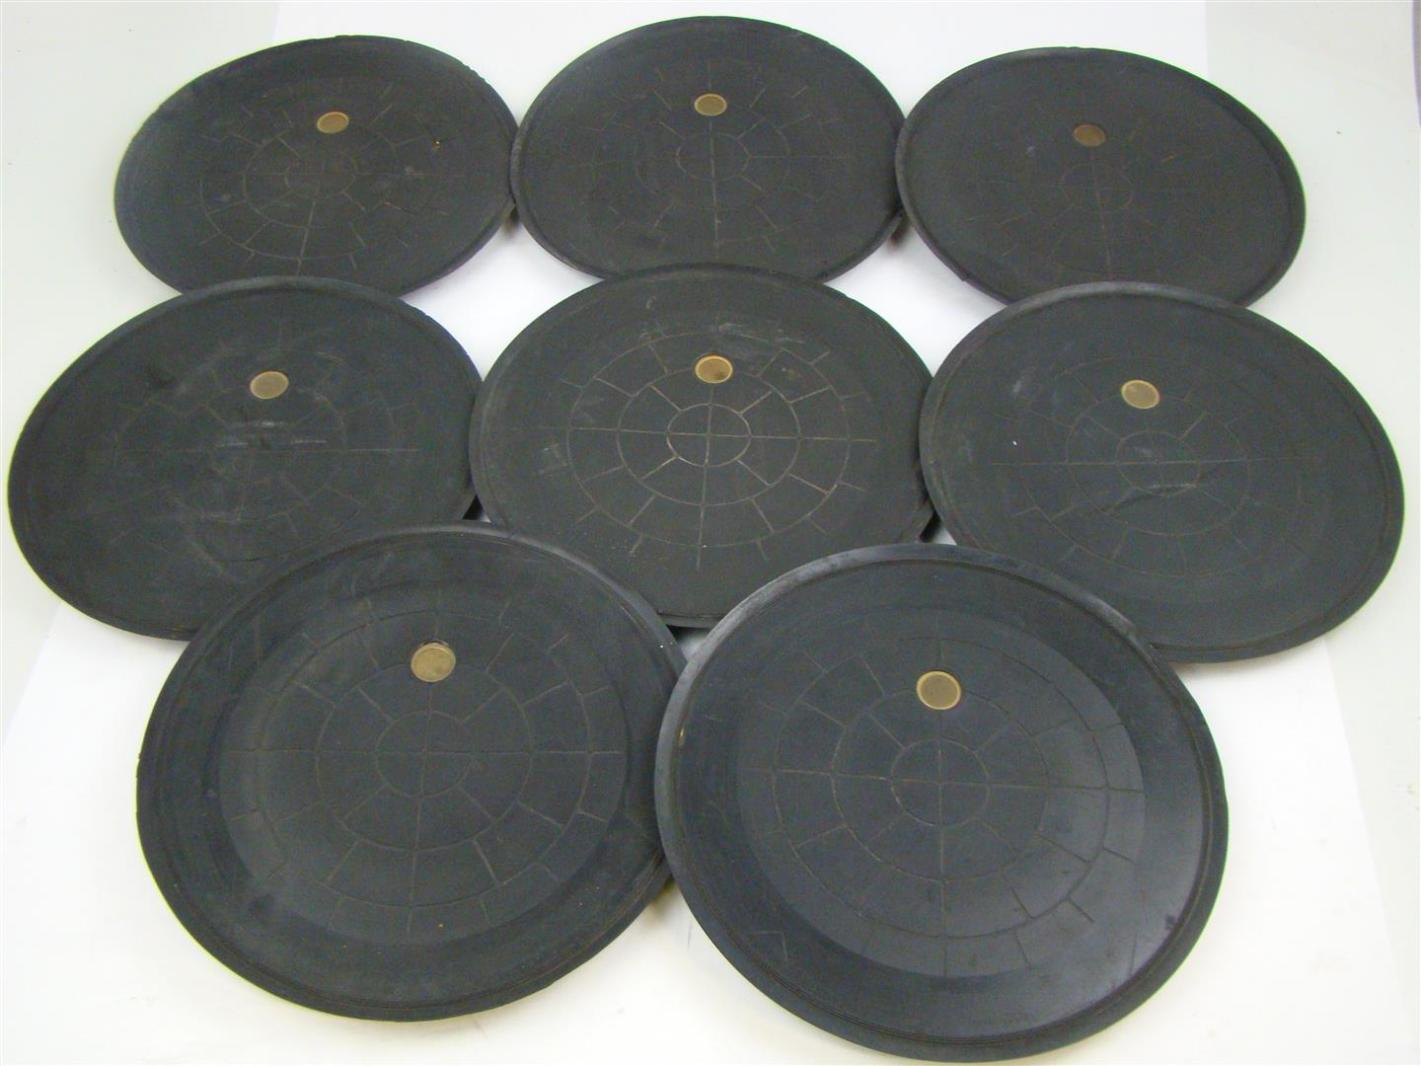 8 Pcs Woods Rubber Powr Grip G3370 Vacuum Pad